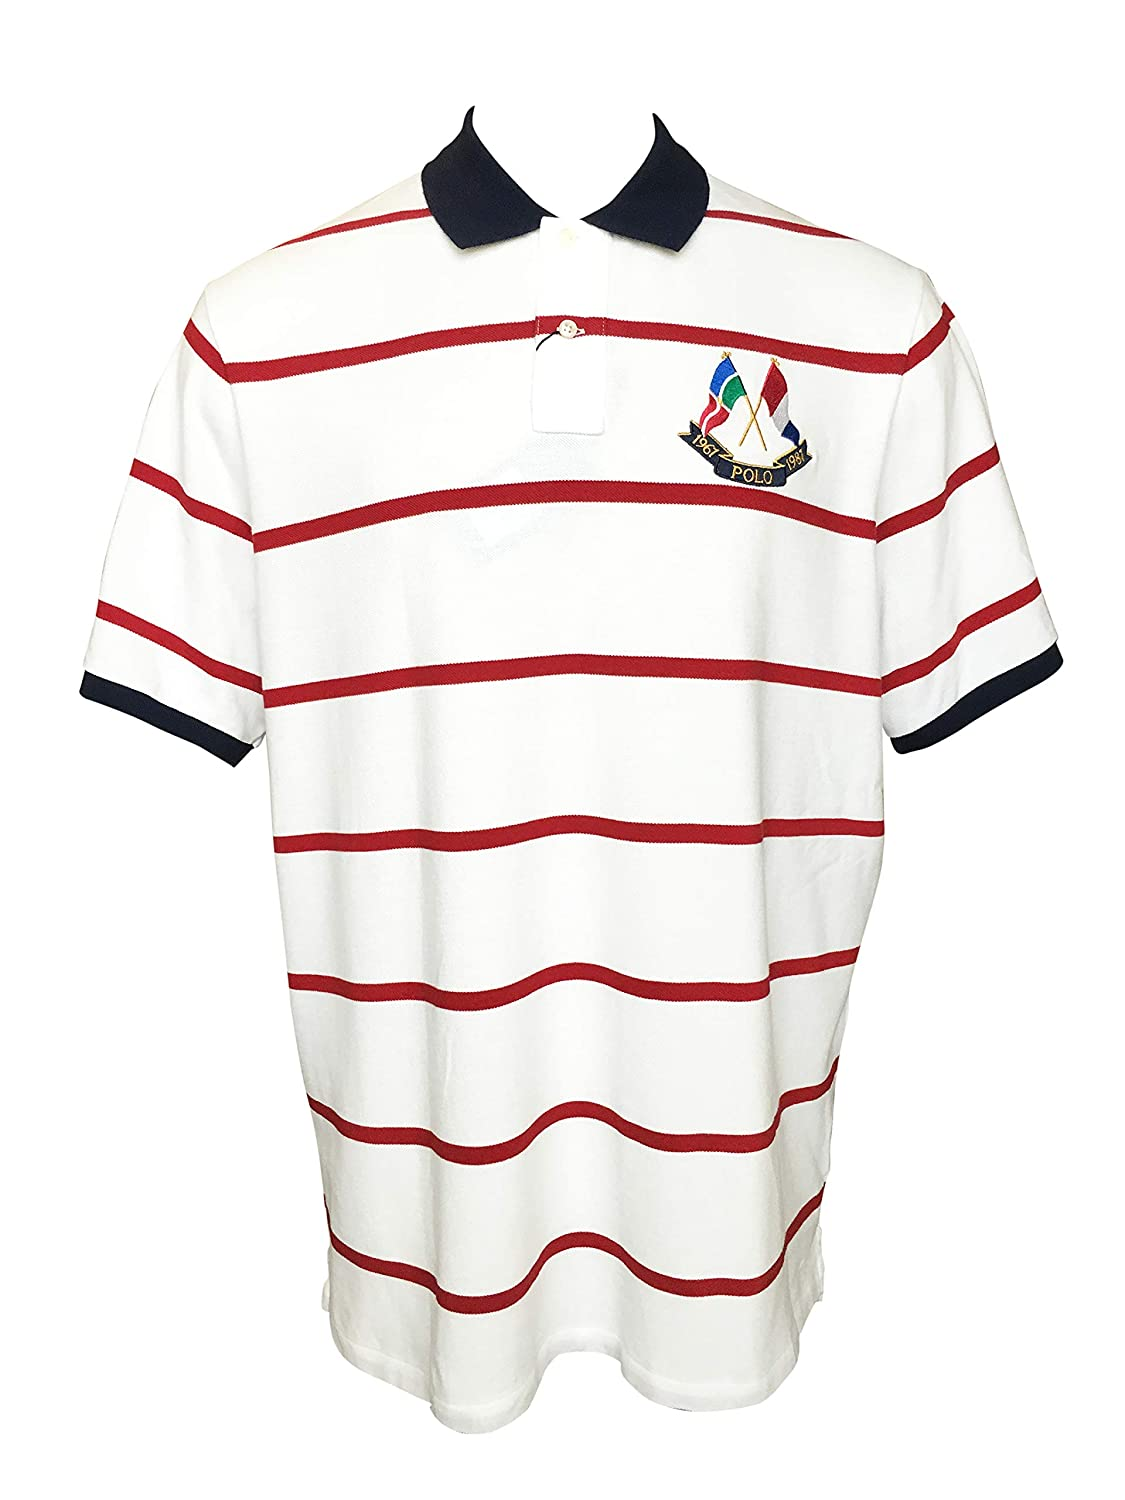 a5f51c68d1 Amazon.com: Polo Ralph Lauren Men's Big & Tall Polo Shirt Classic ...